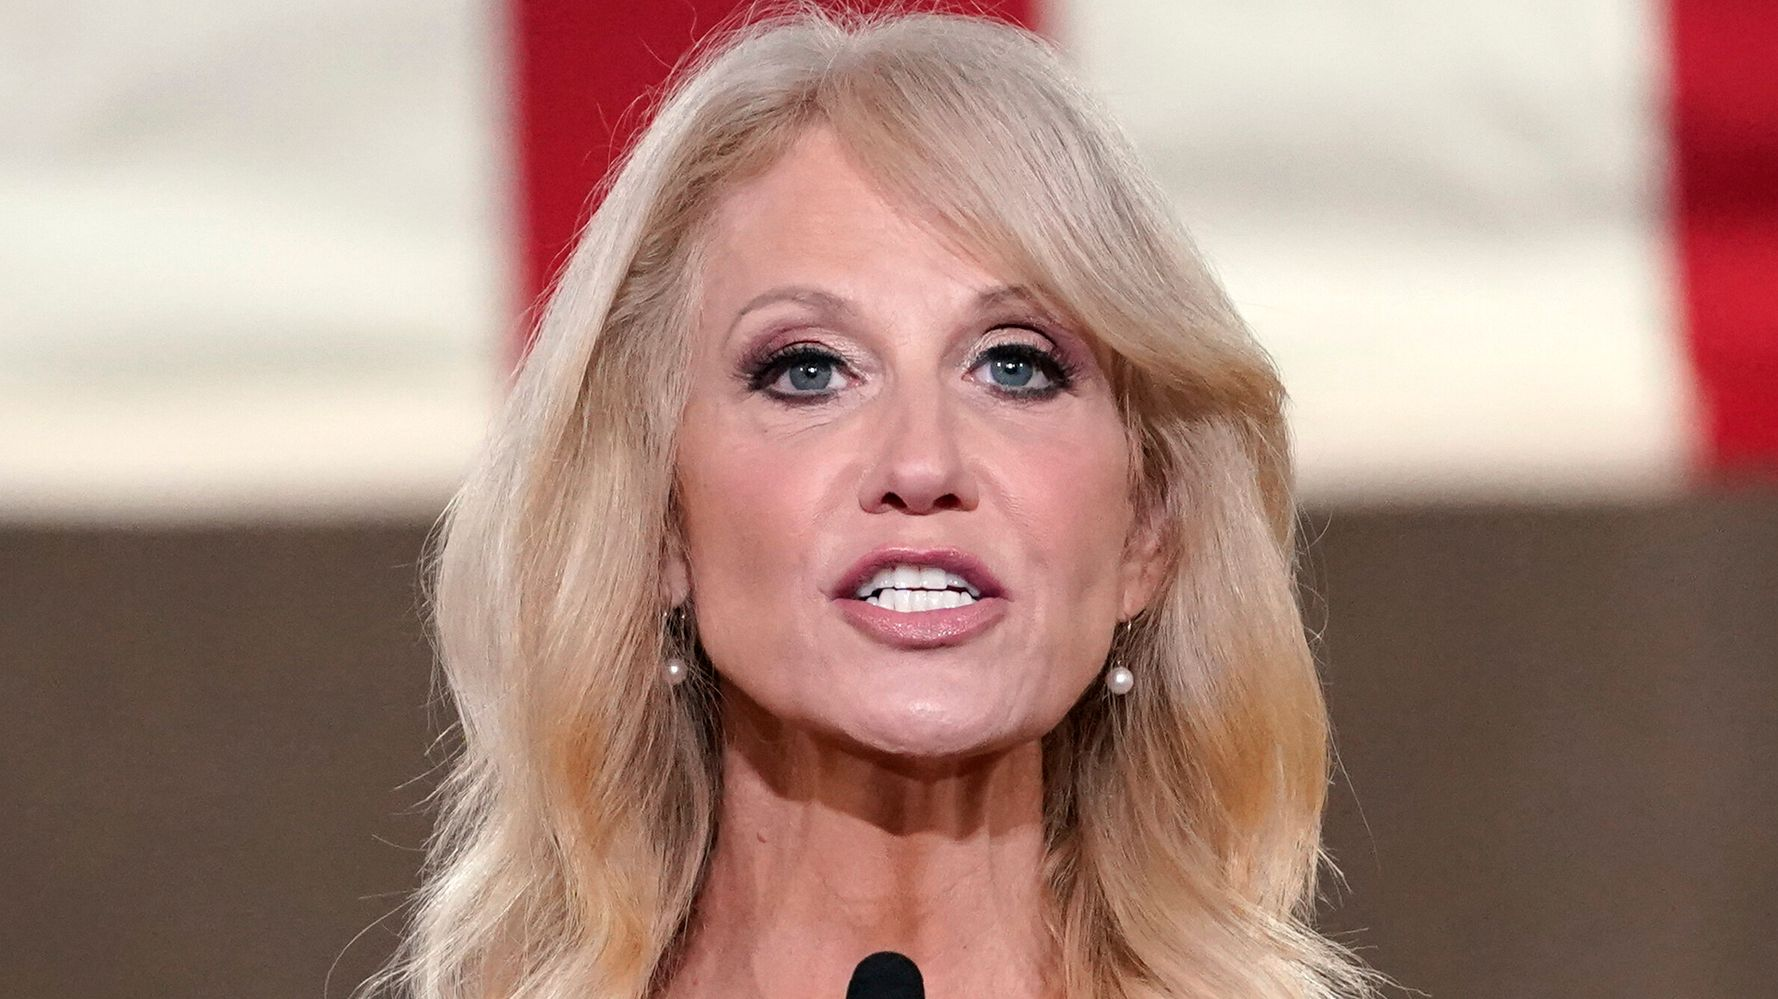 Donald Trump, Kellyanne Conway's 'Landslide' Boasts Come Back To Haunt Them